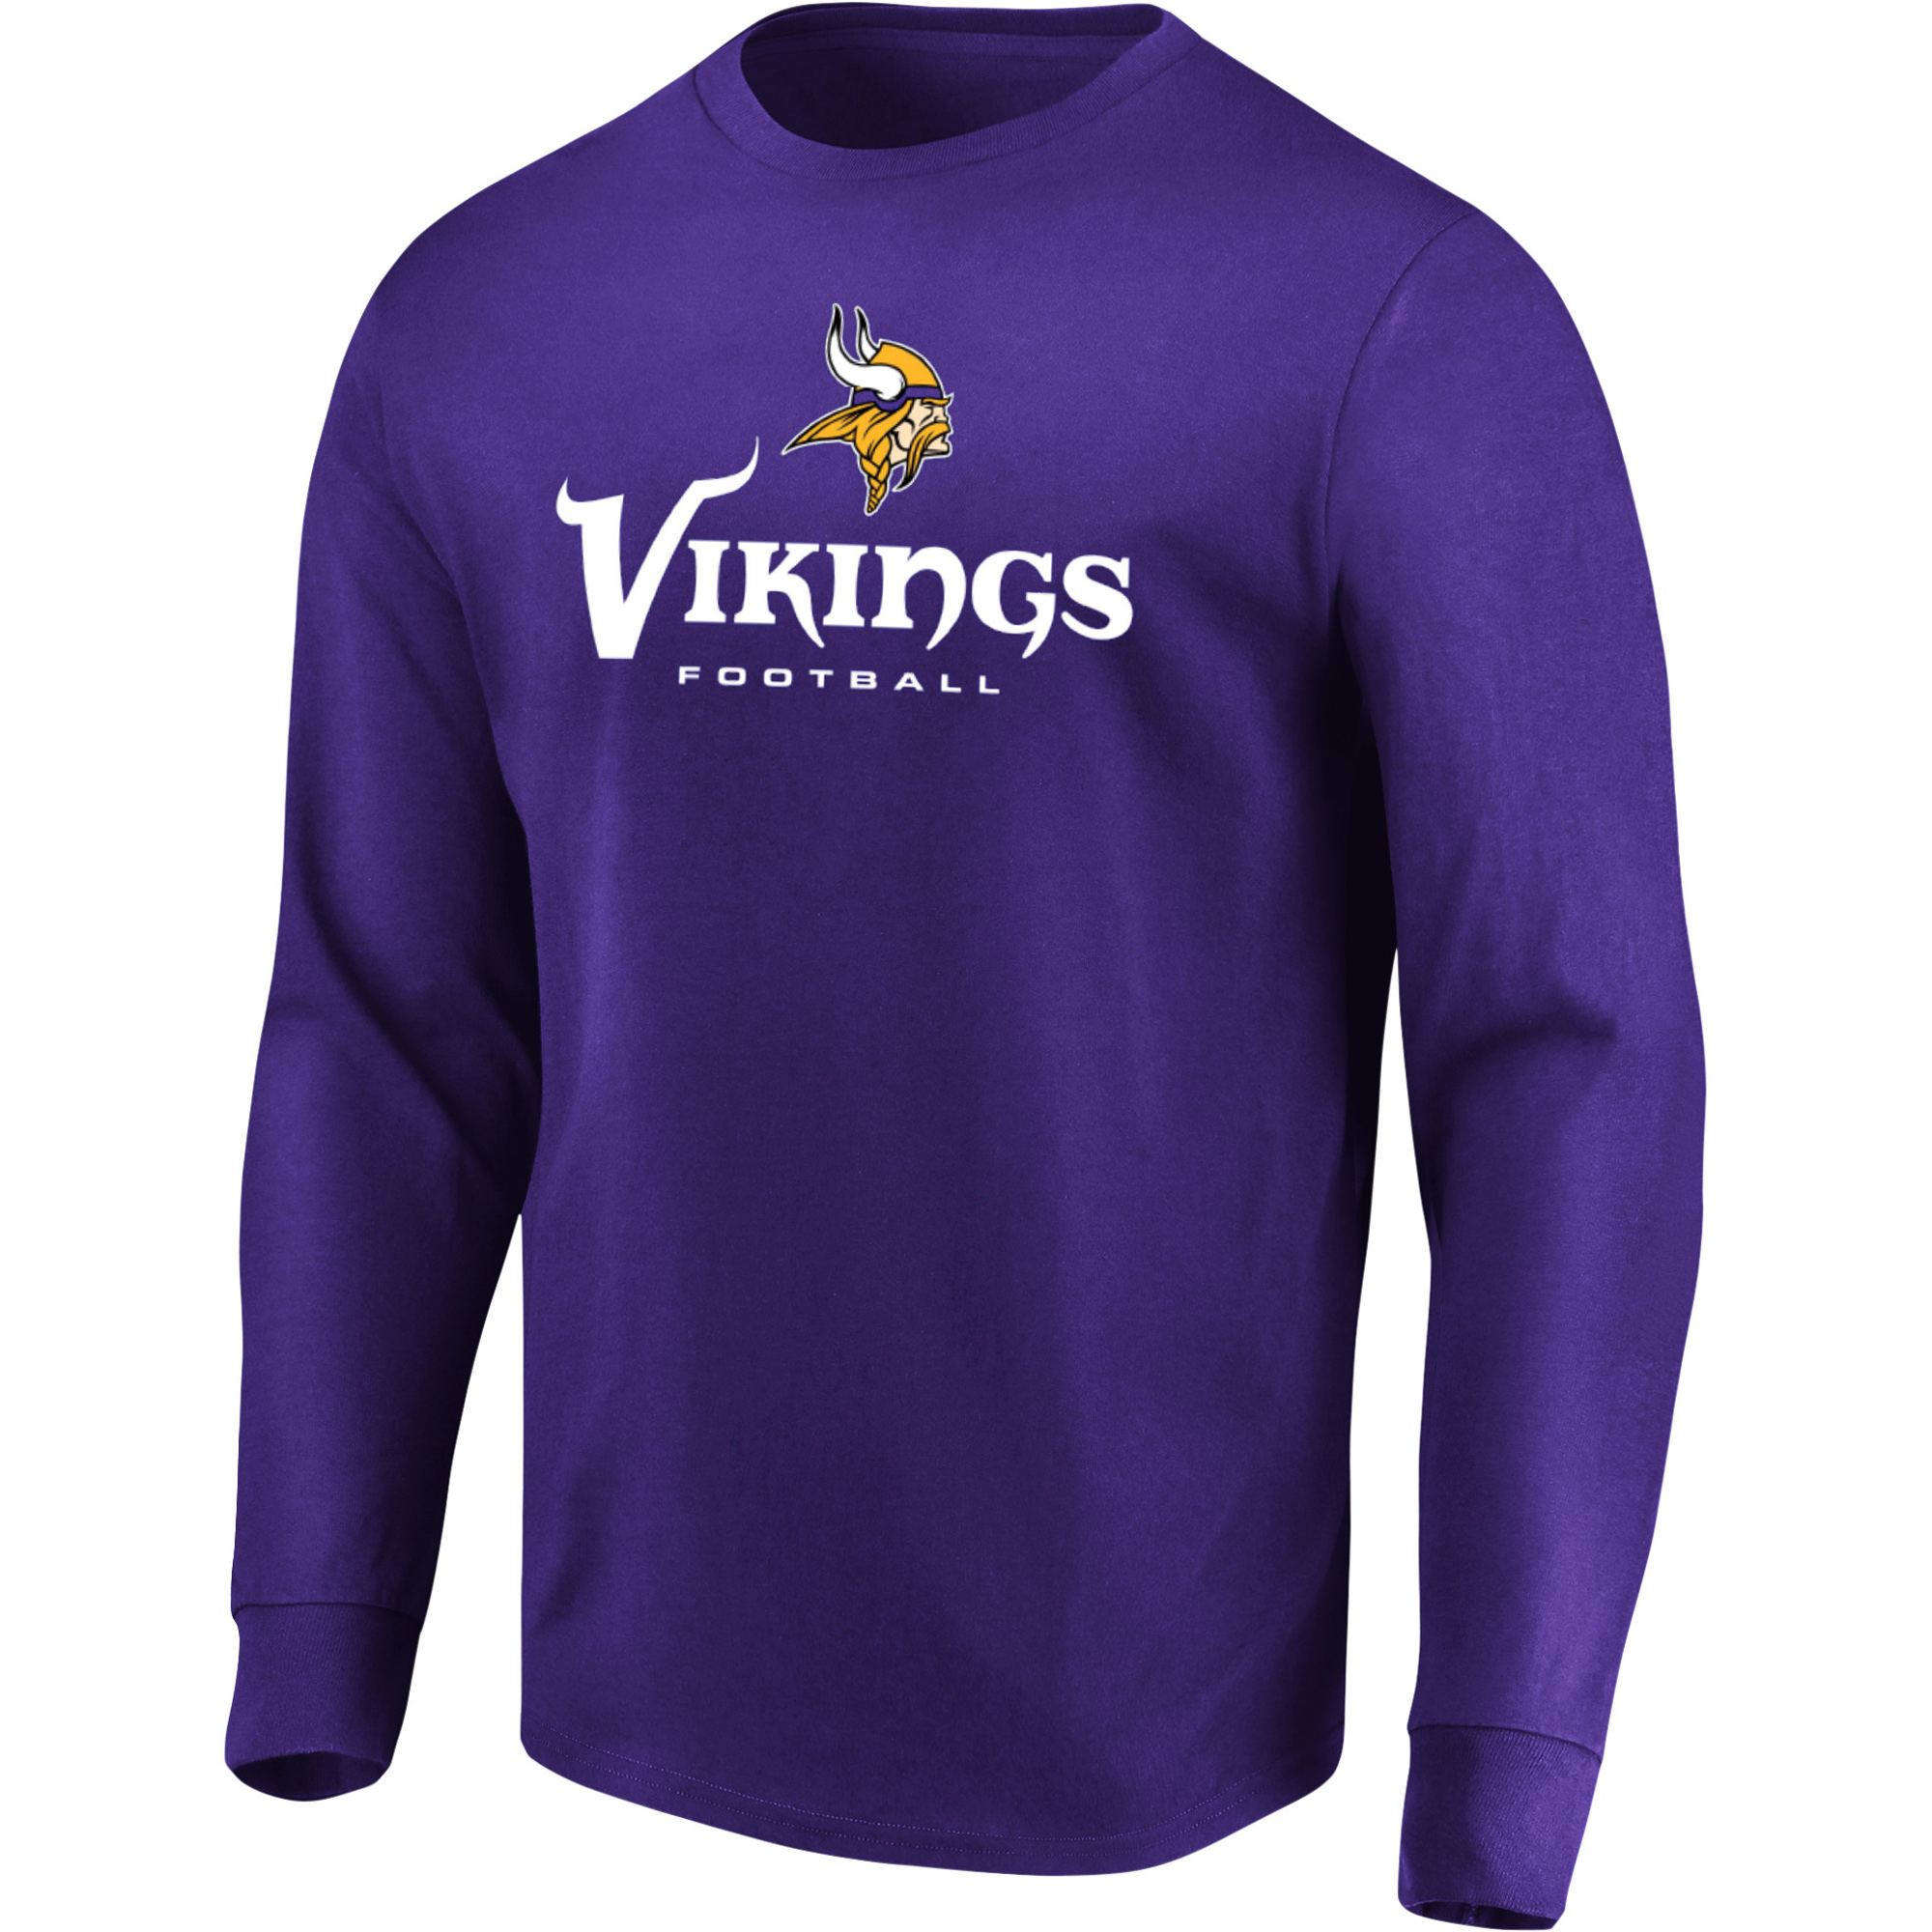 save off fbe2a 459a6 Minnesota Vikings Team Shop - Walmart.com